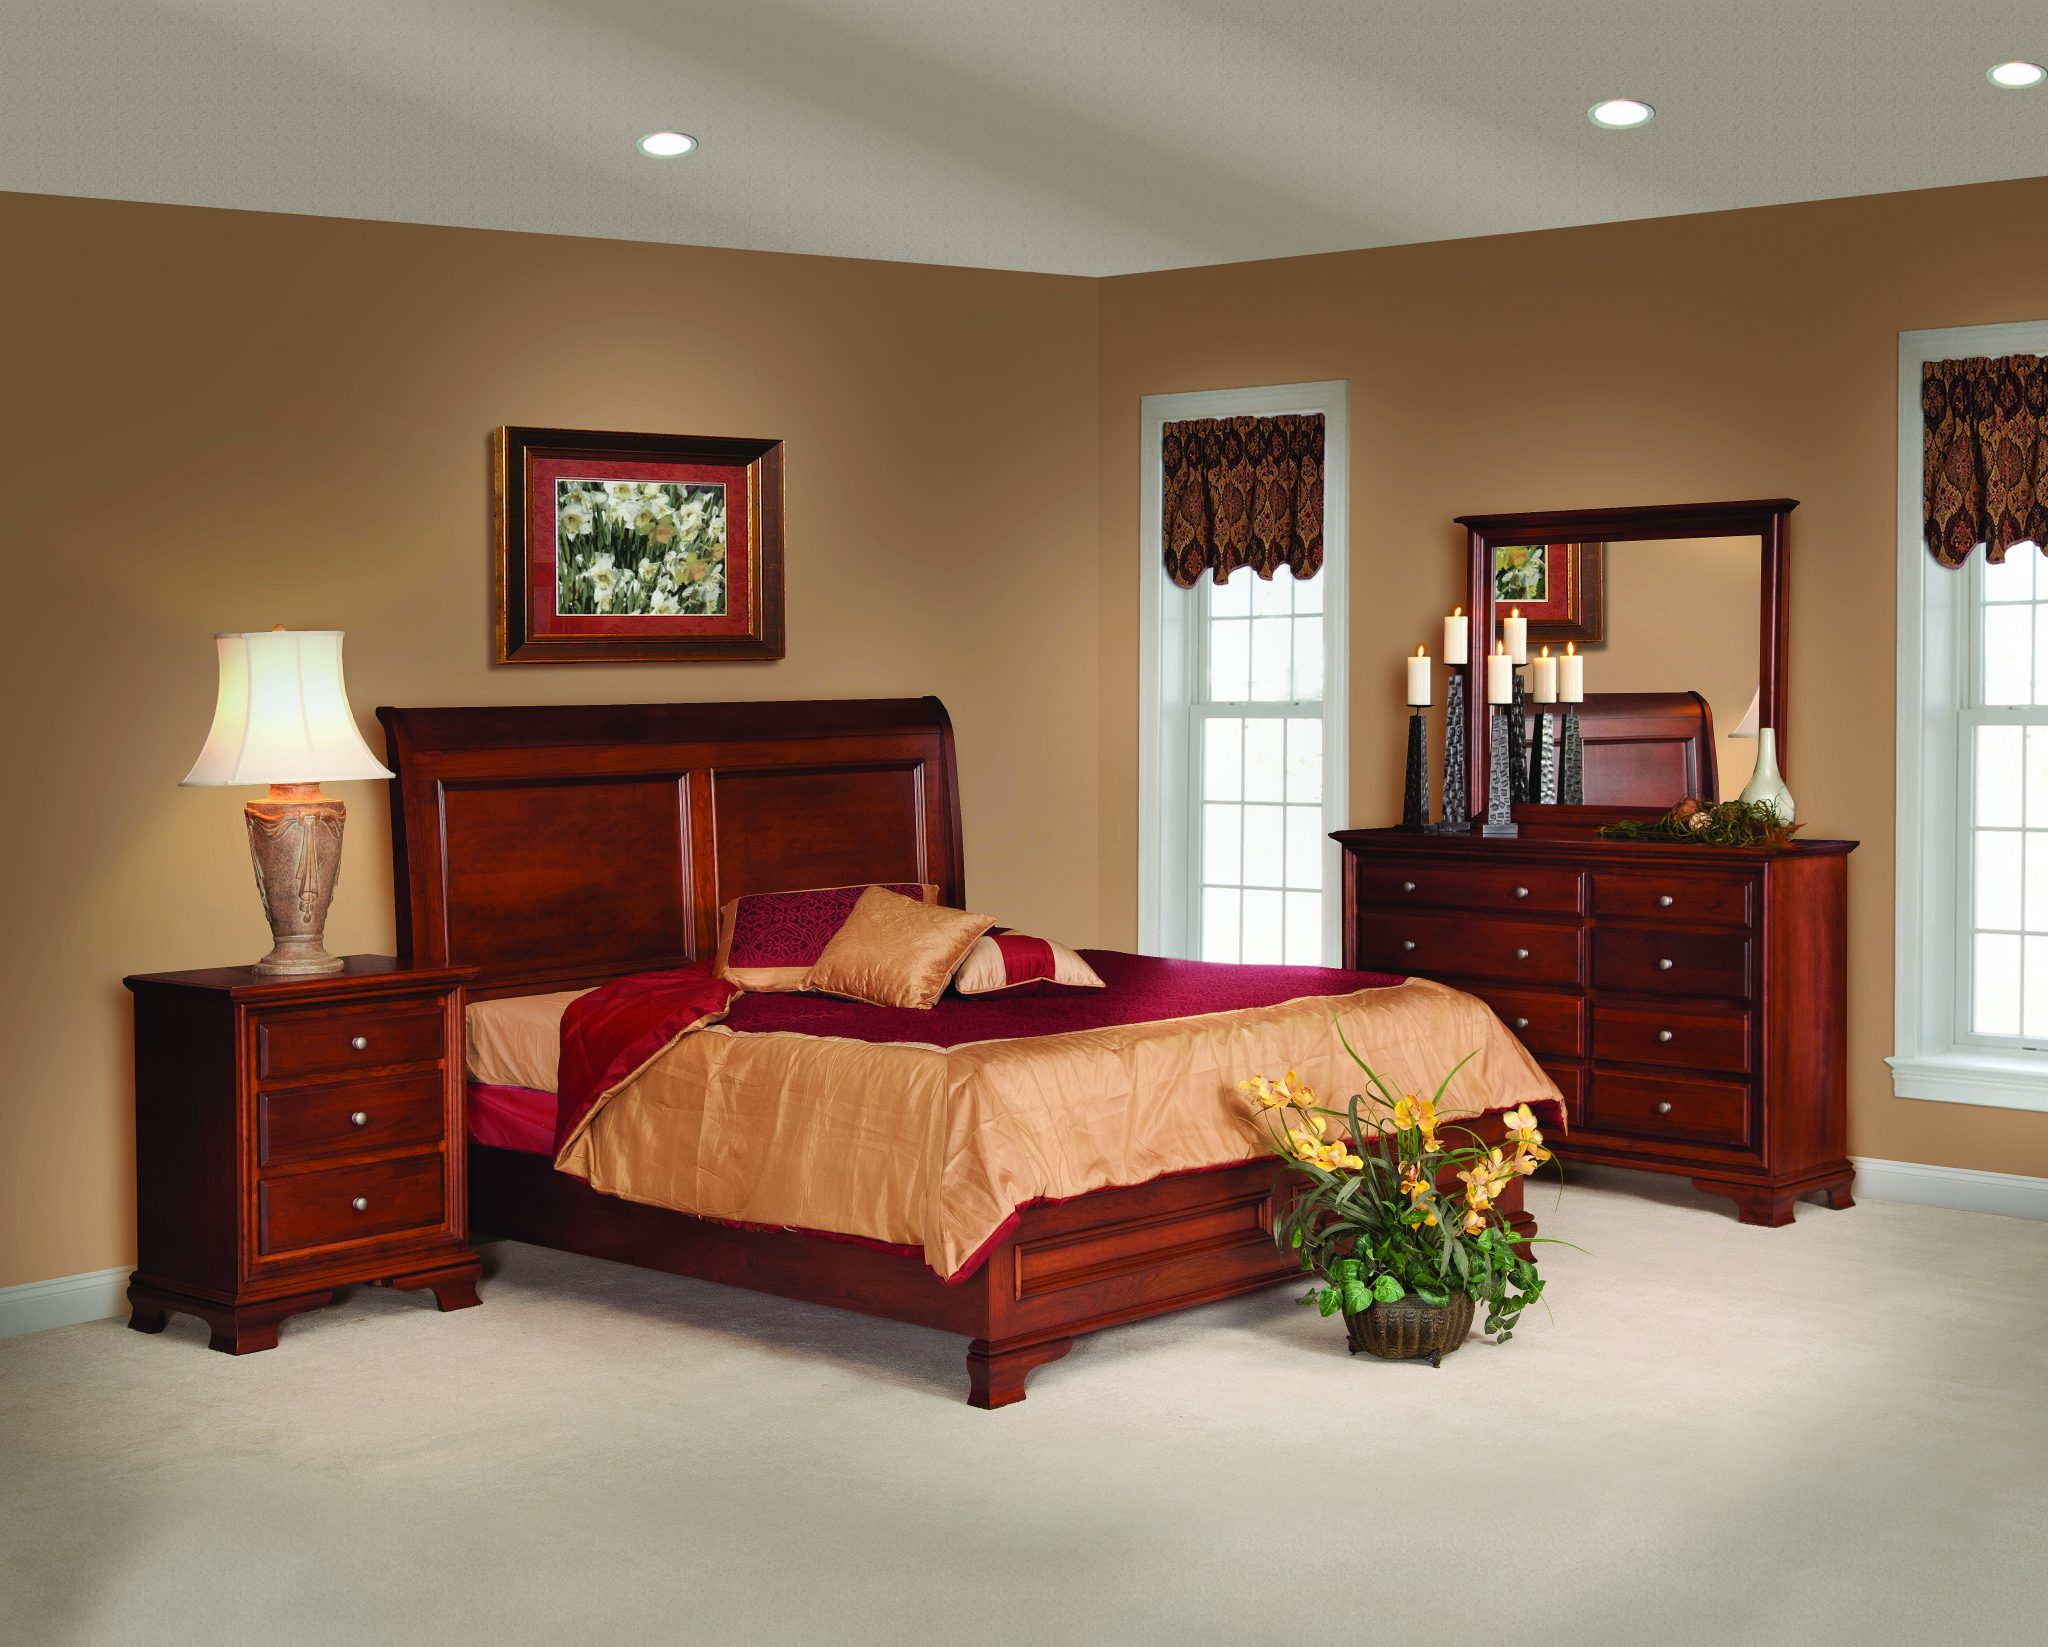 Daniels Amish Classic Collection Off Sale Johnson Furniture - Daniel's amish bedroom furniture